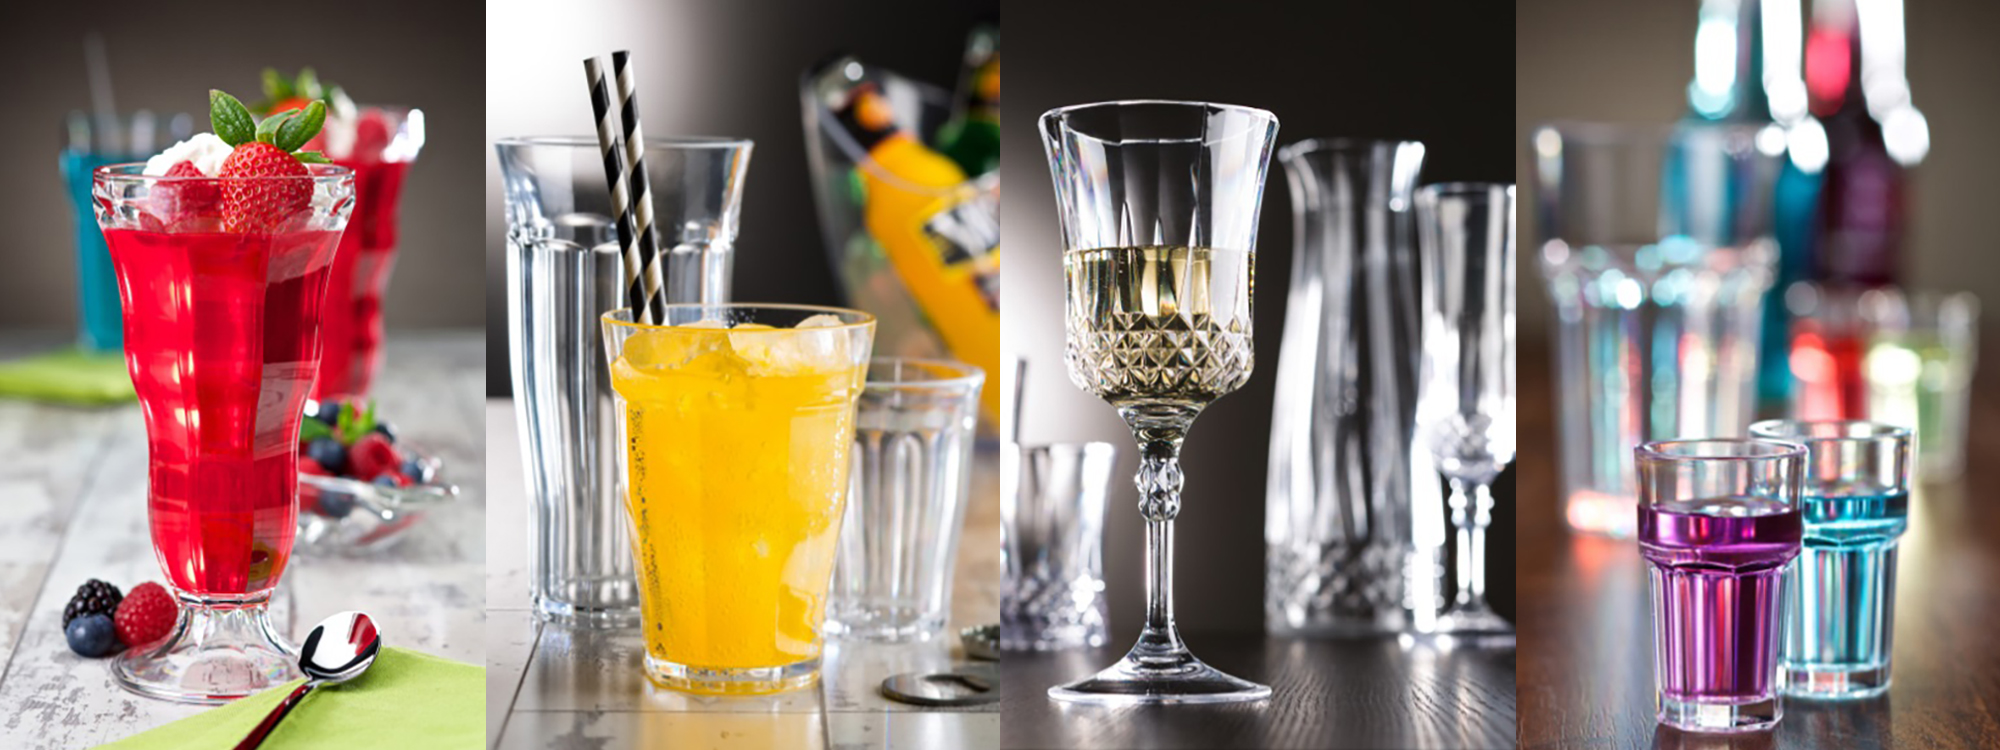 High Quality Polycarbonate Glassware at wholesale prices